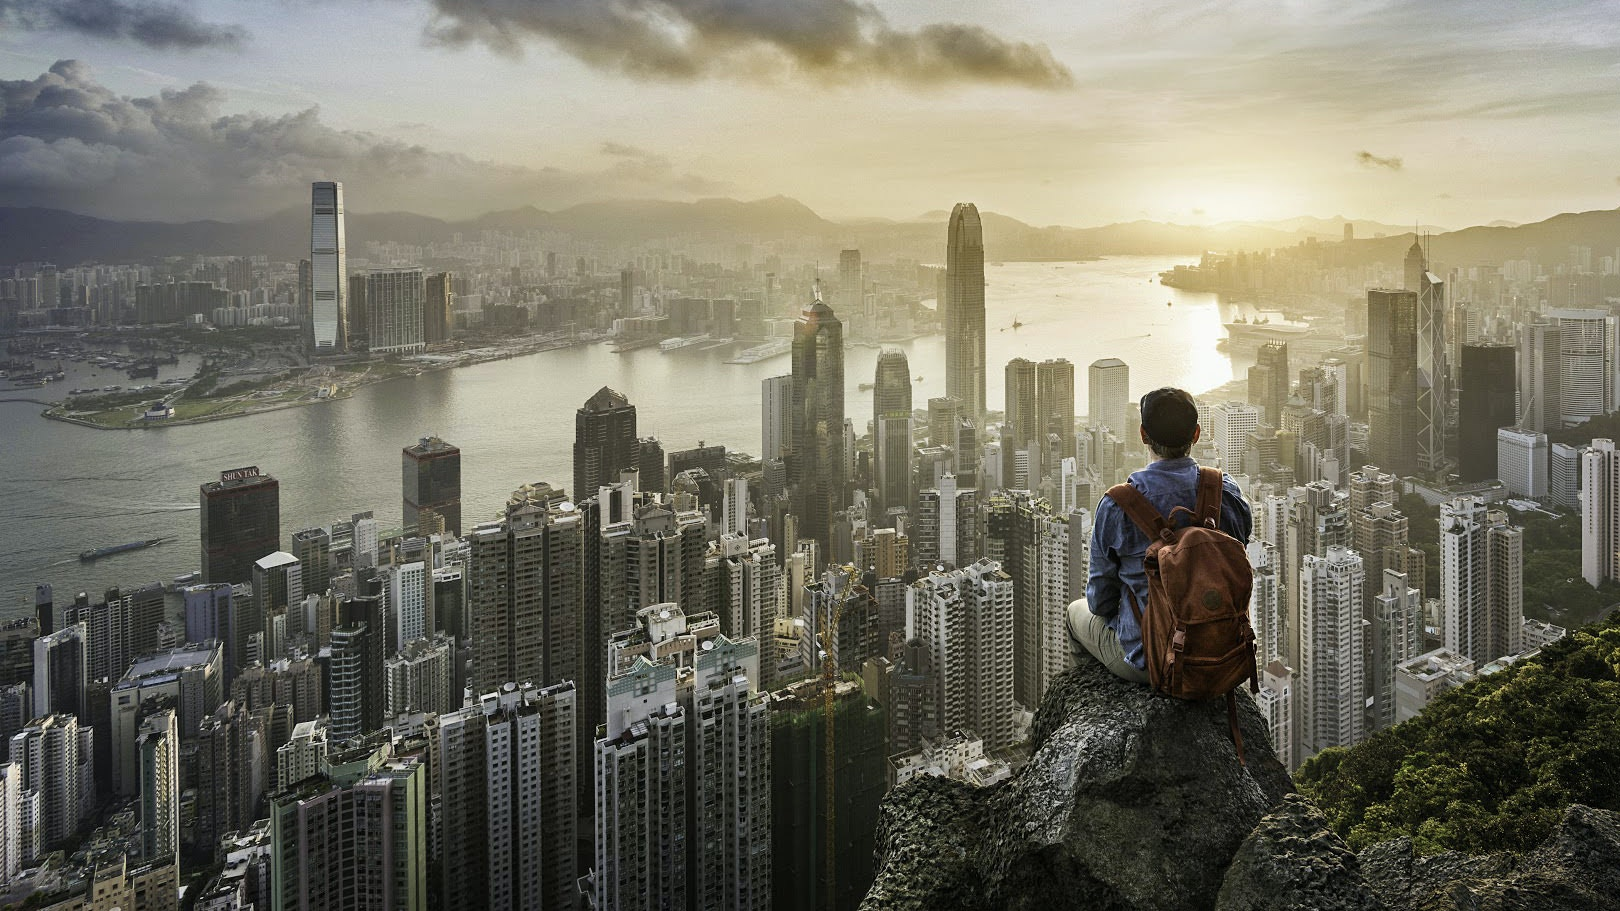 Man sitting on rock in front of Hong Kong skyline at sunrise © Martin Puddy / Getty Images